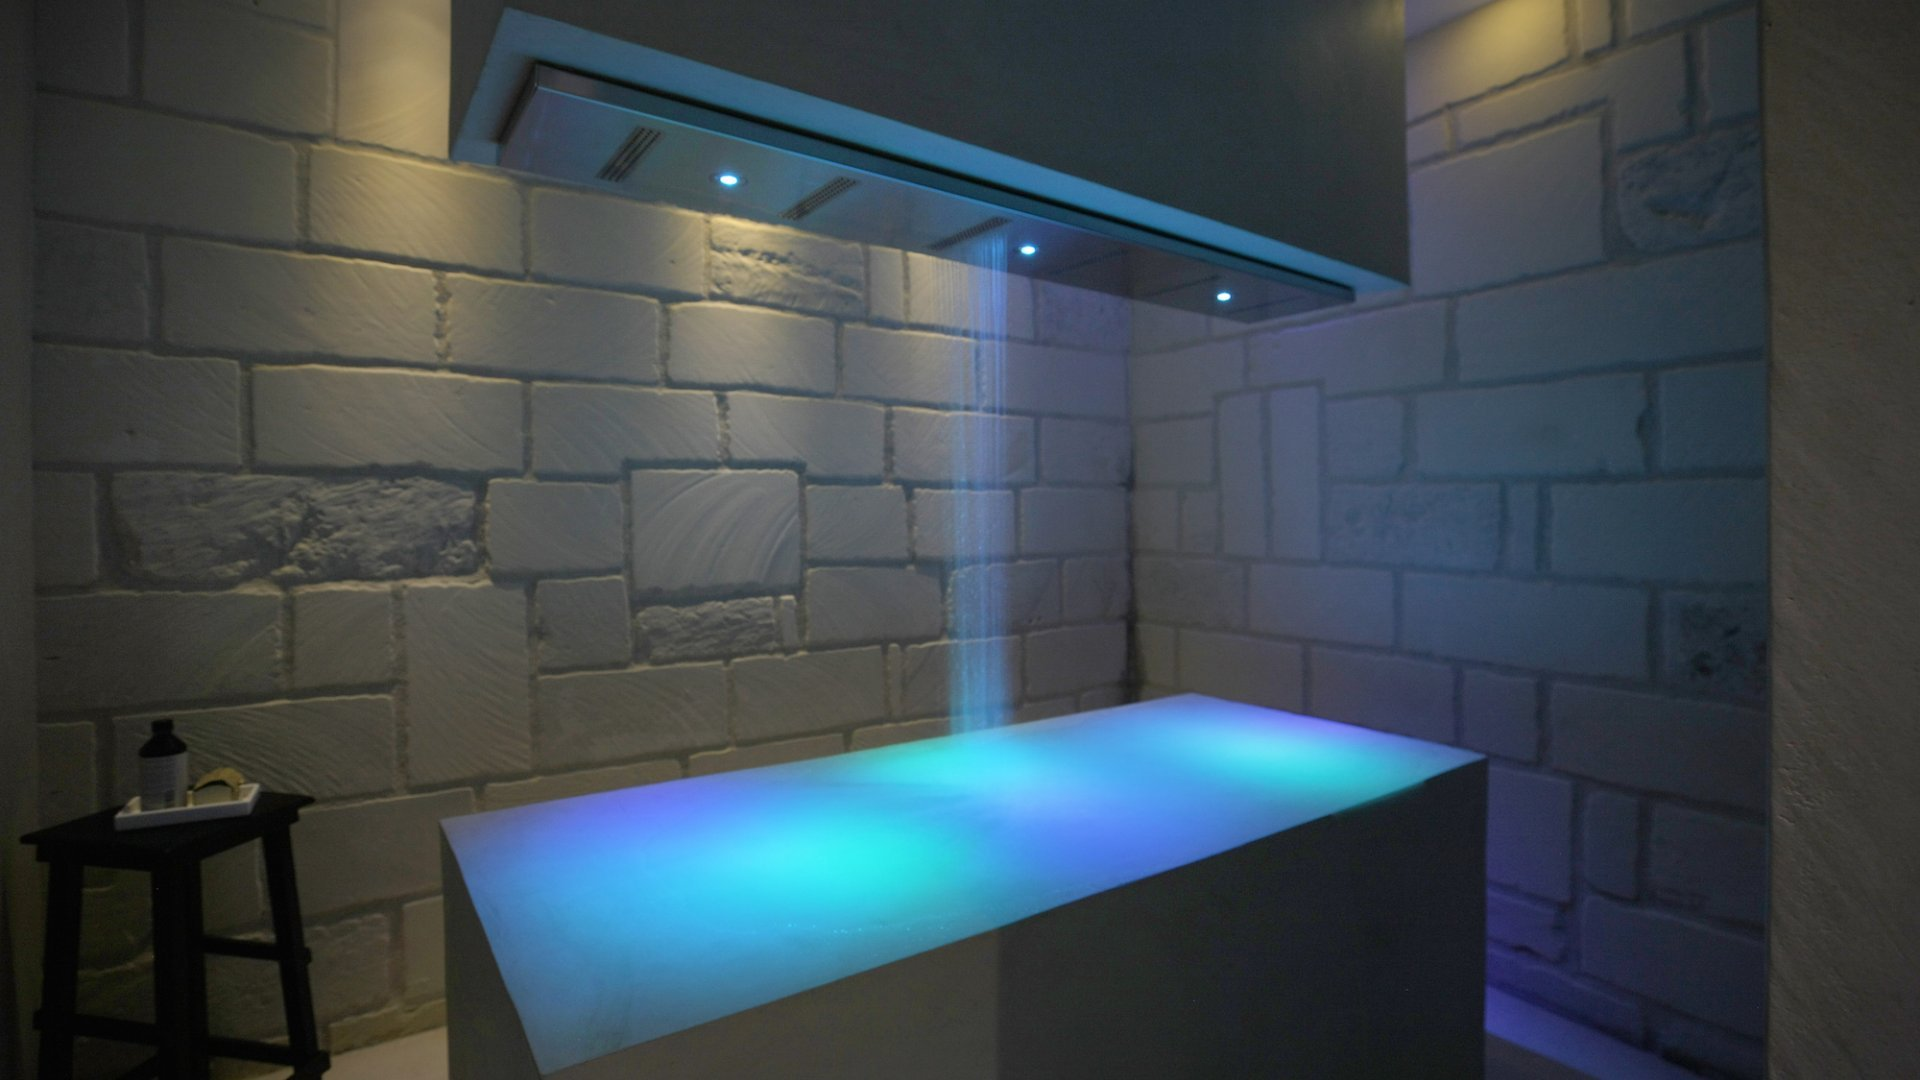 SPA: room with the horizontal shower for massages